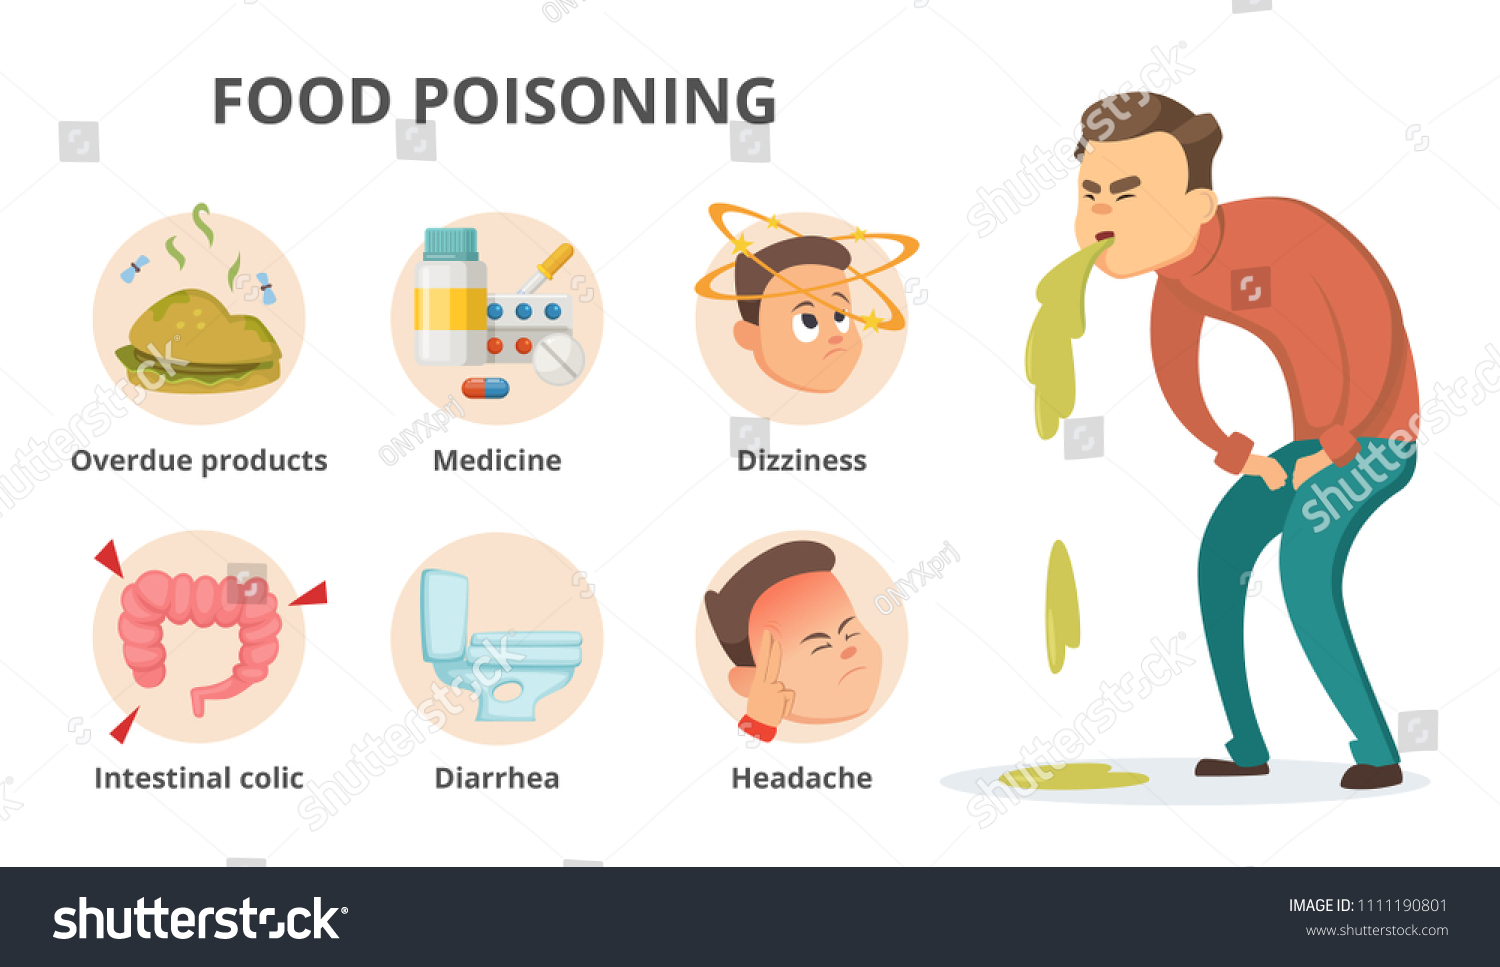 Different Symptoms Food Poisoning Infographic Pictures Stock